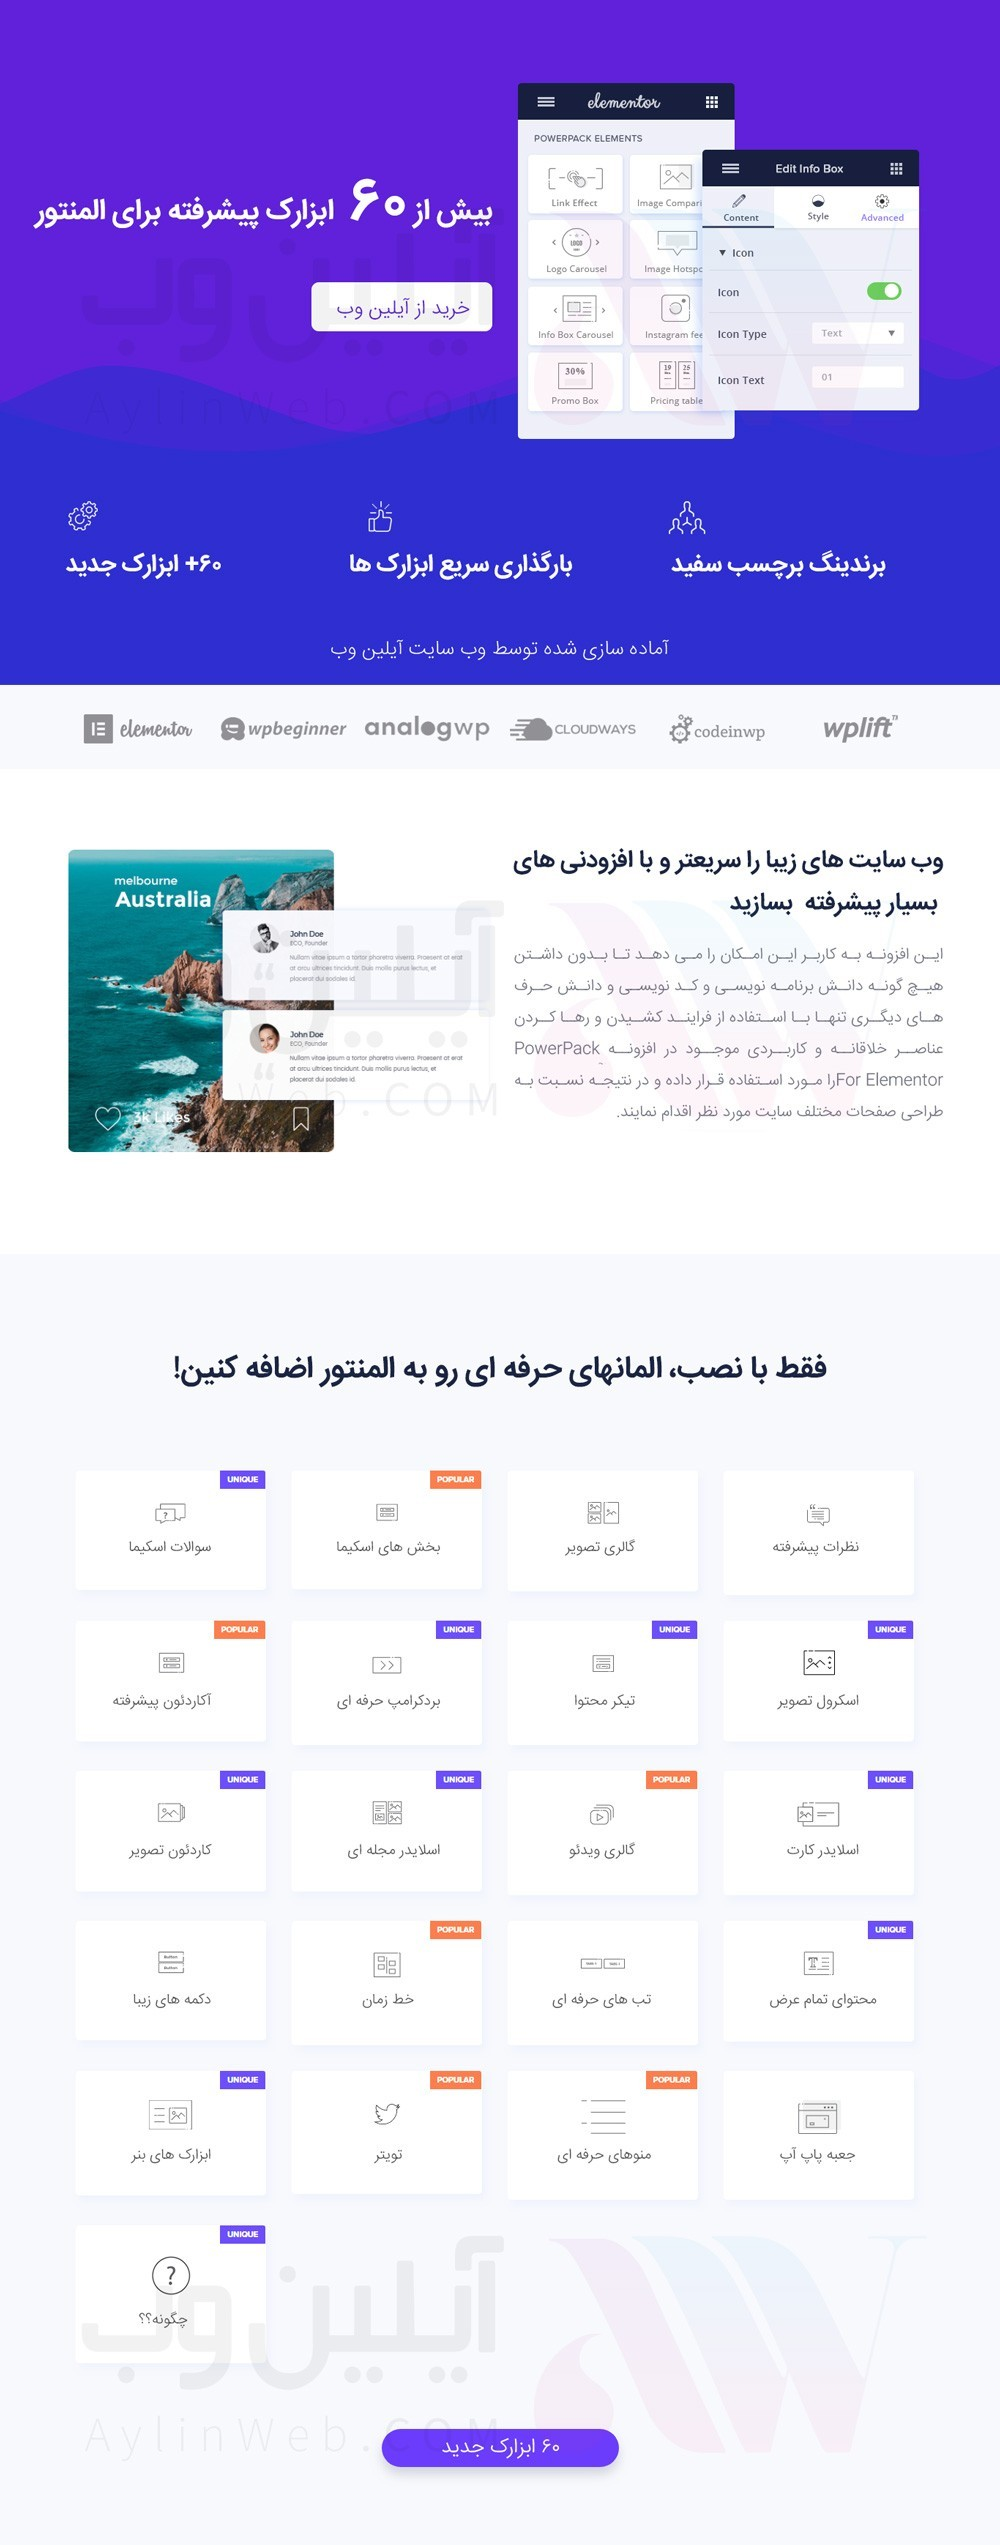 powerpack for elementor - افزونه PowerPack For Elementor: افرودنی جانبی قدرتمند المنتور پاورپک